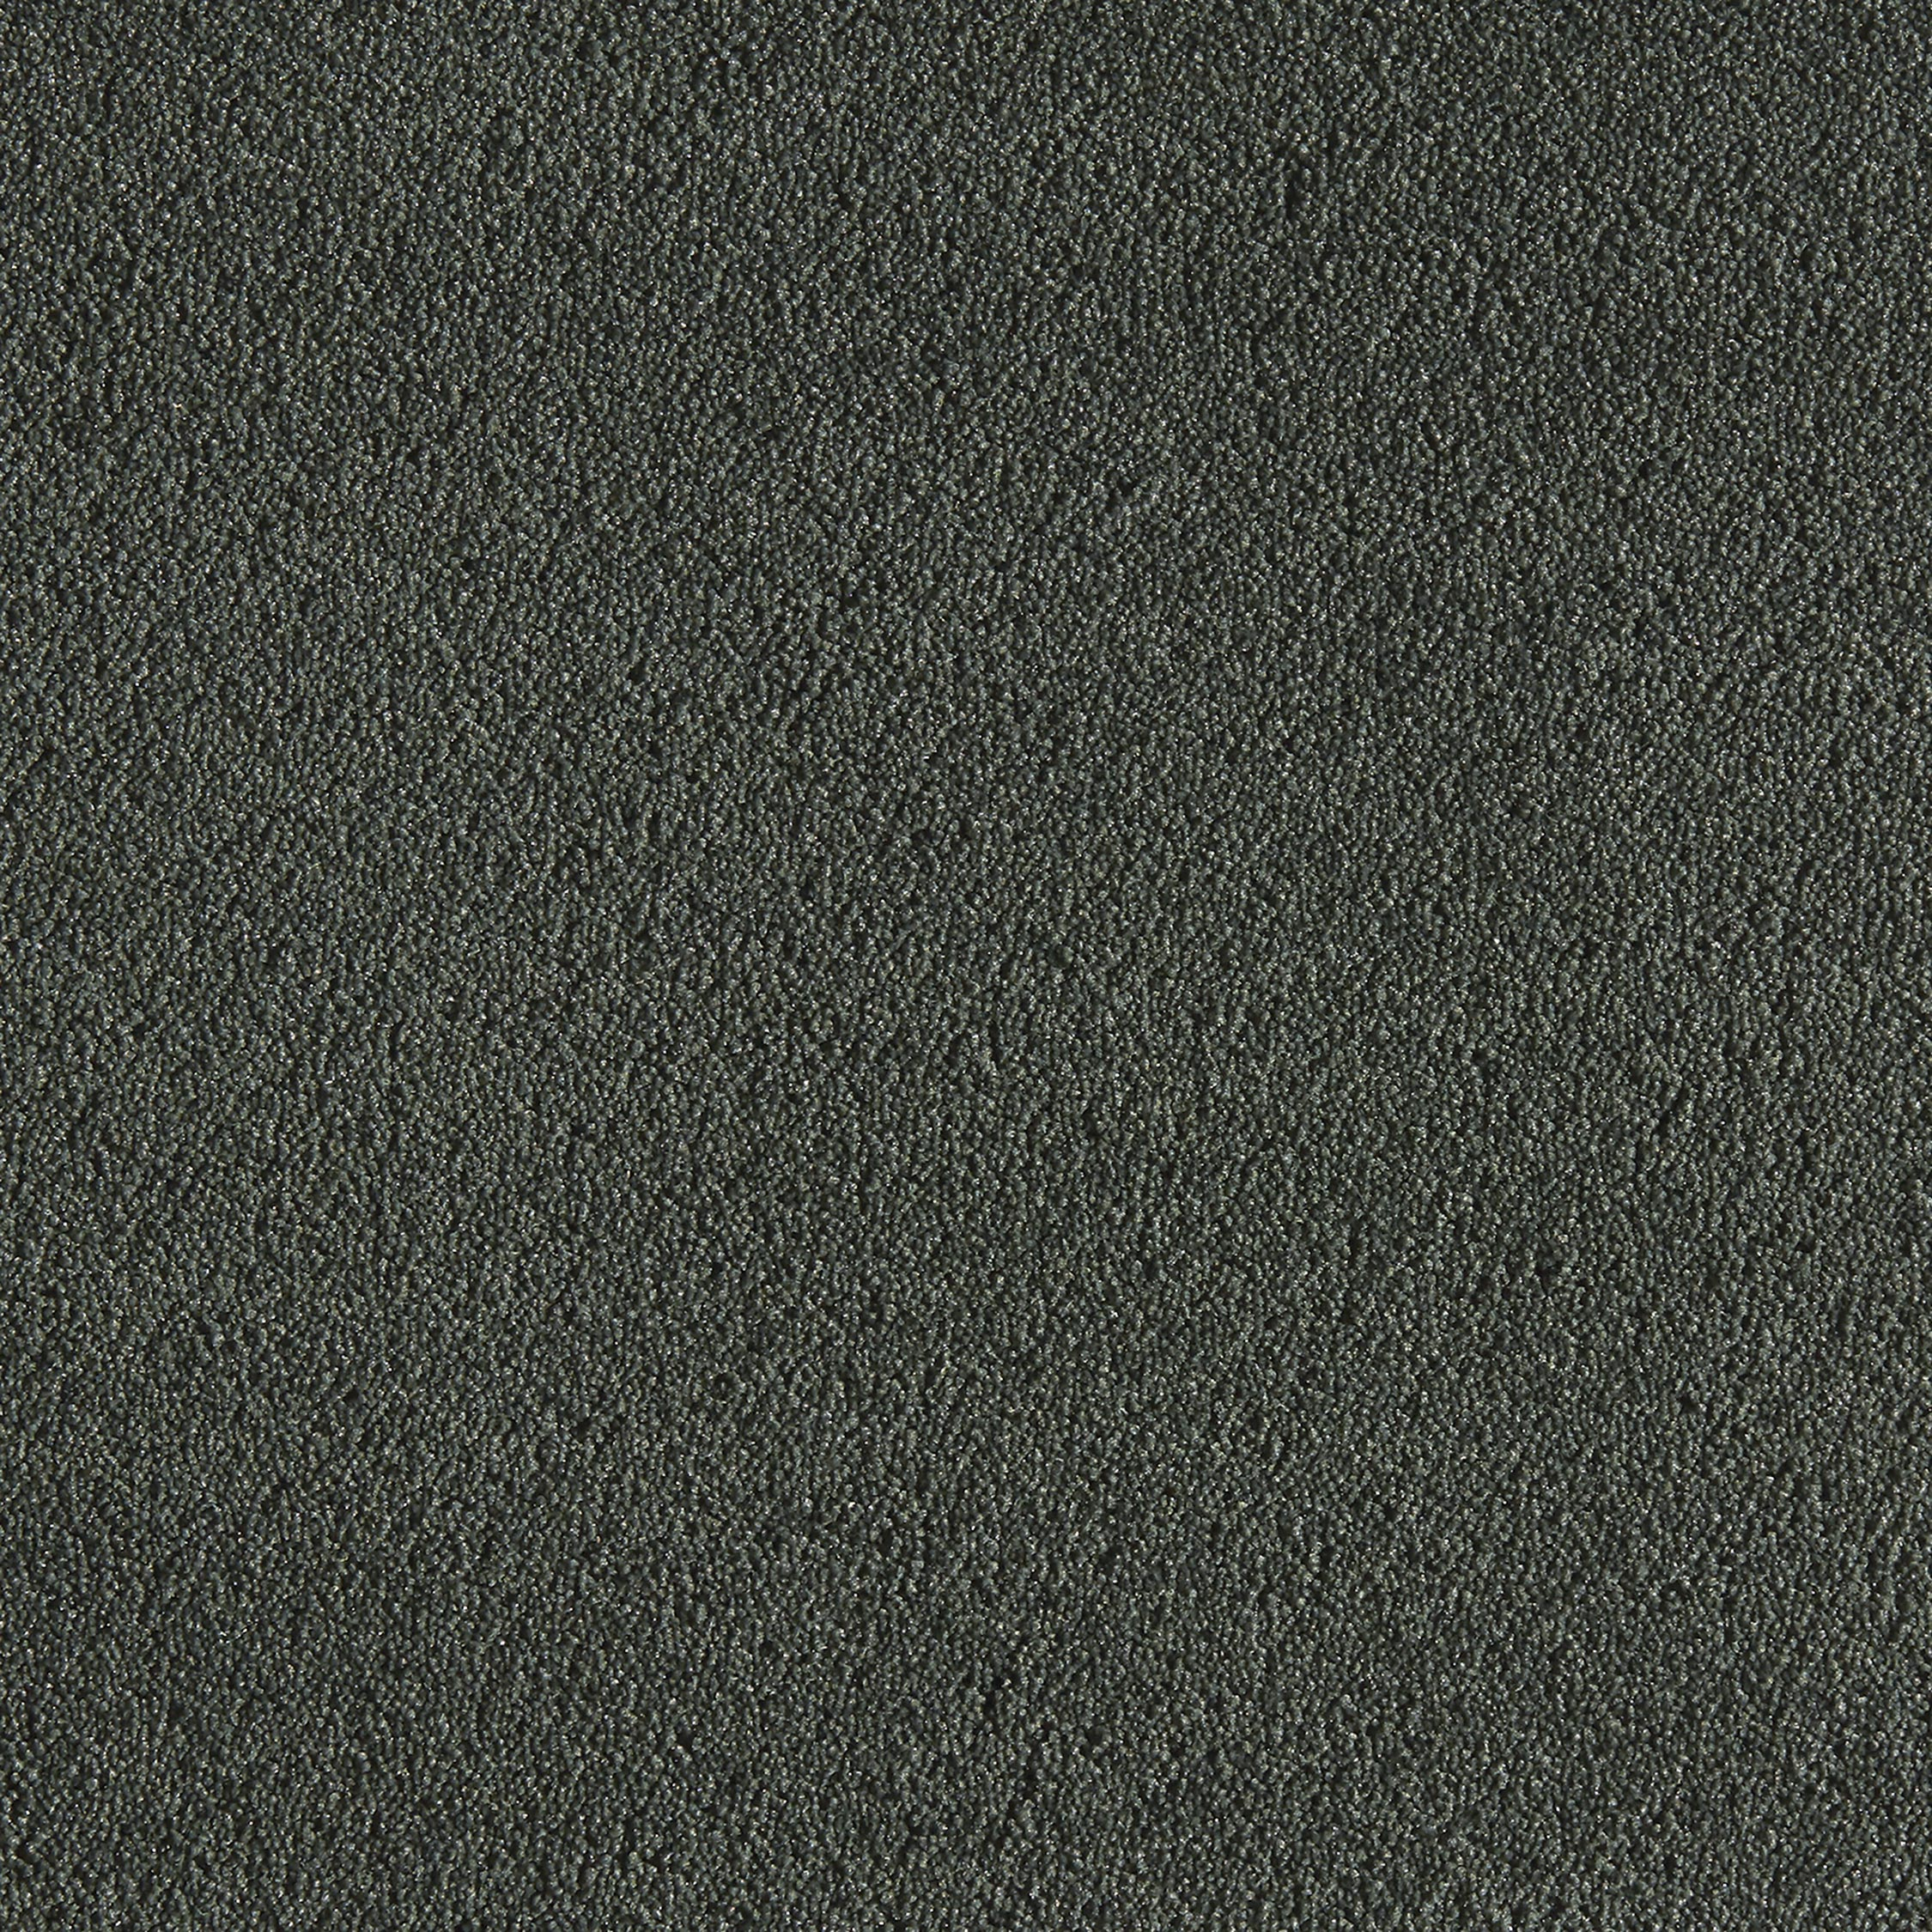 Texture 2000 WT  dusty green